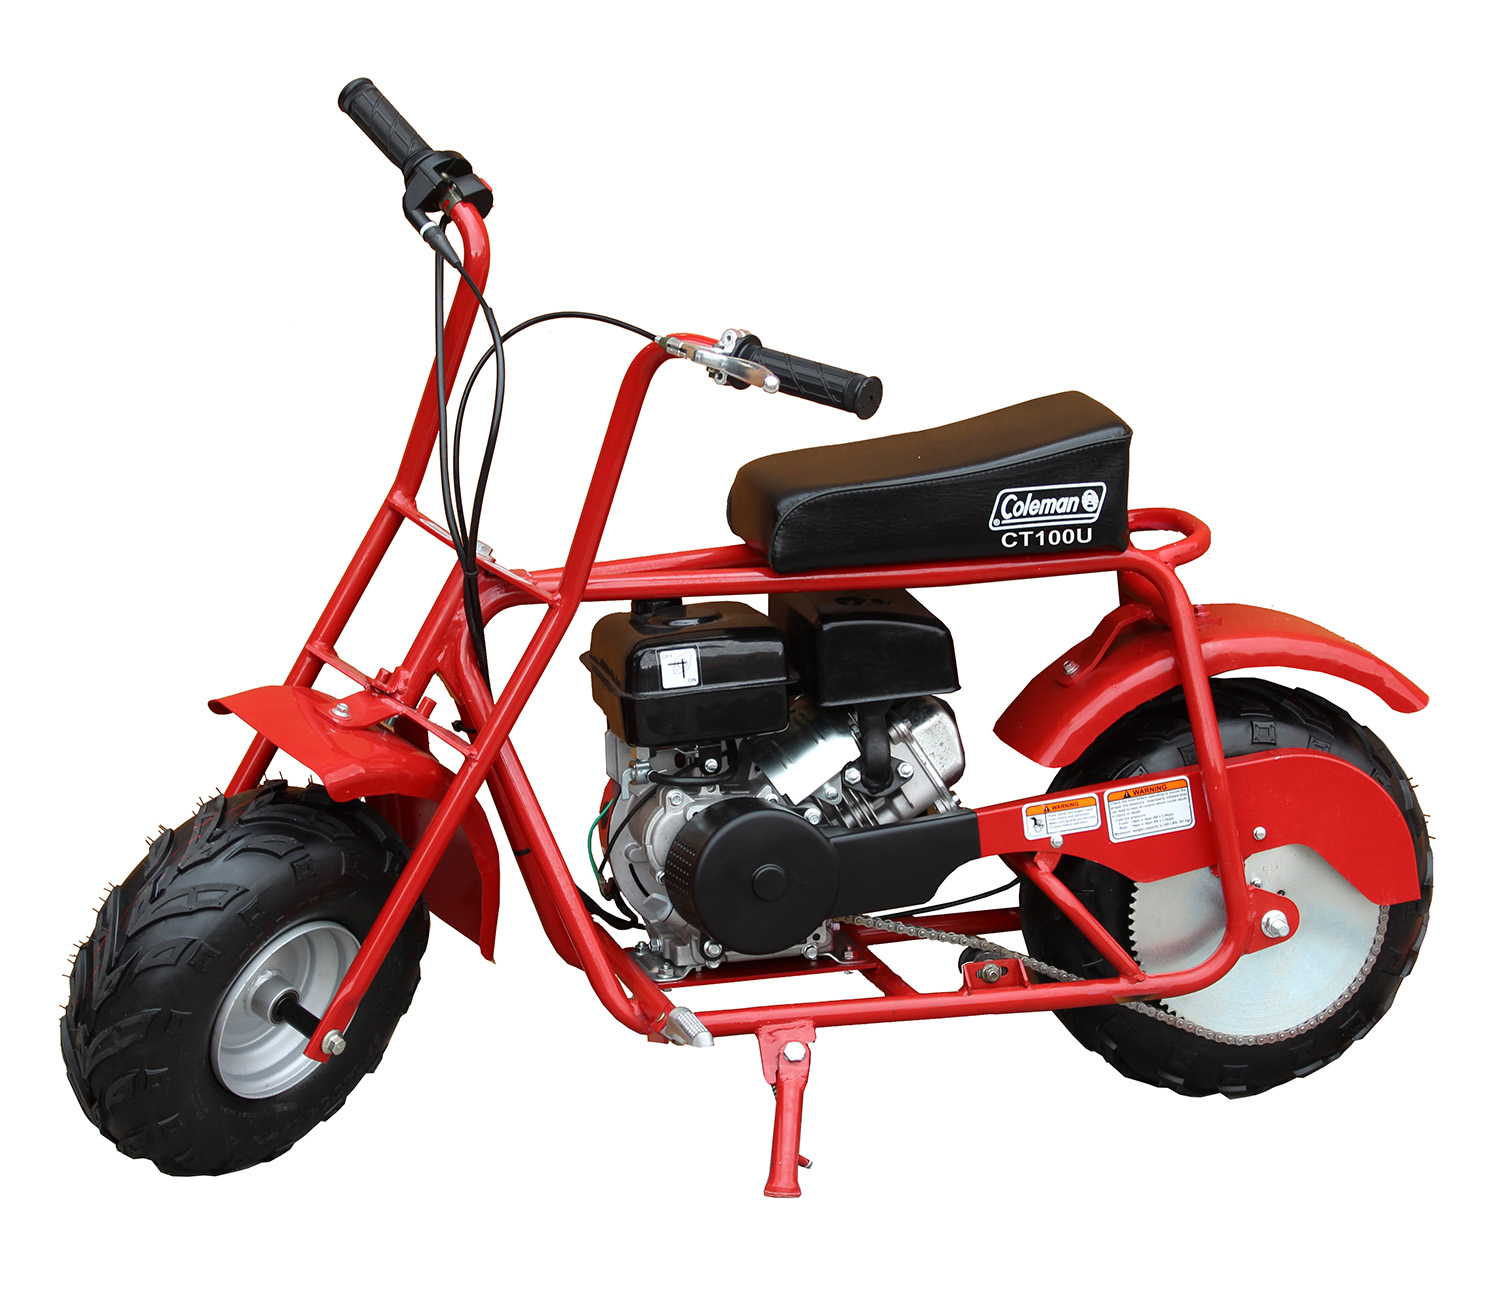 Our flagship mini bike but even mini-er! This mini bike is perfect for bringing the little ones along for an adventure.